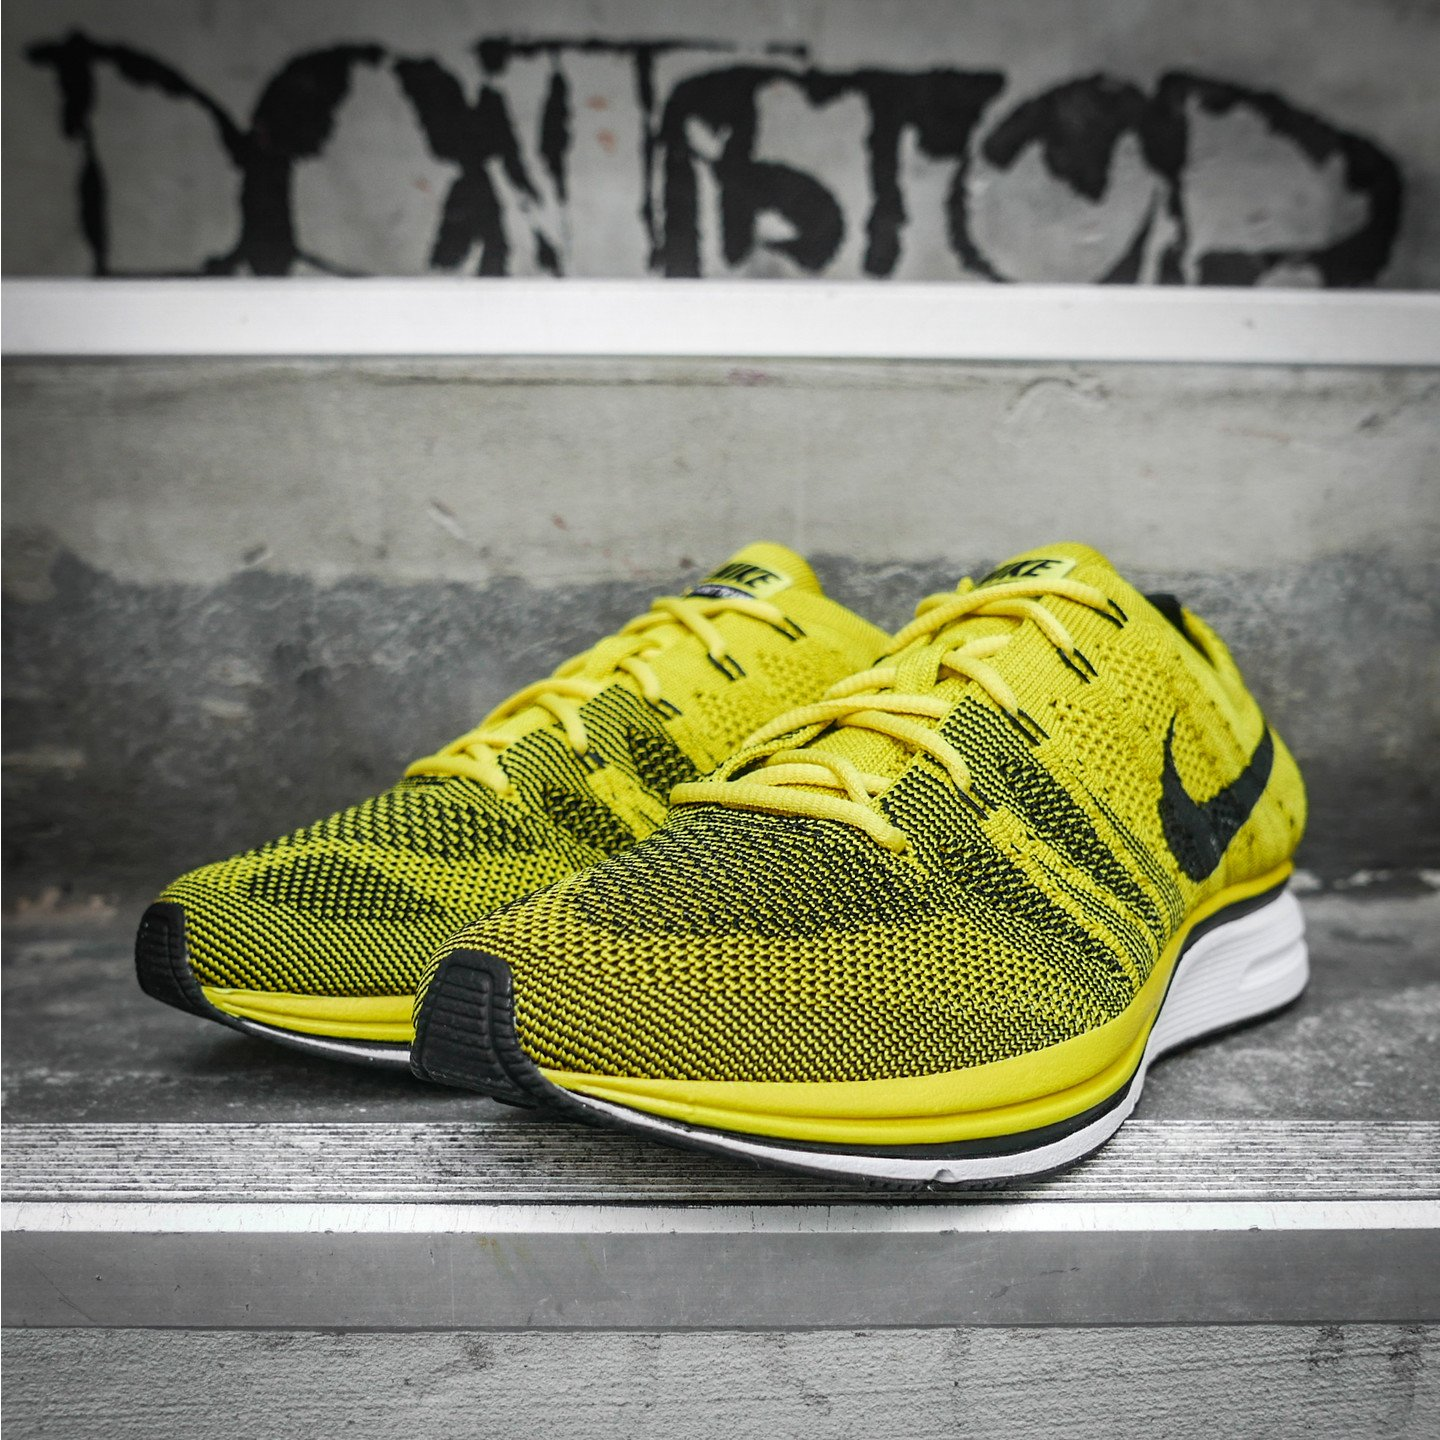 Nike Flyknit Trainer Bright Citron/ Black/ White  AH8396-700